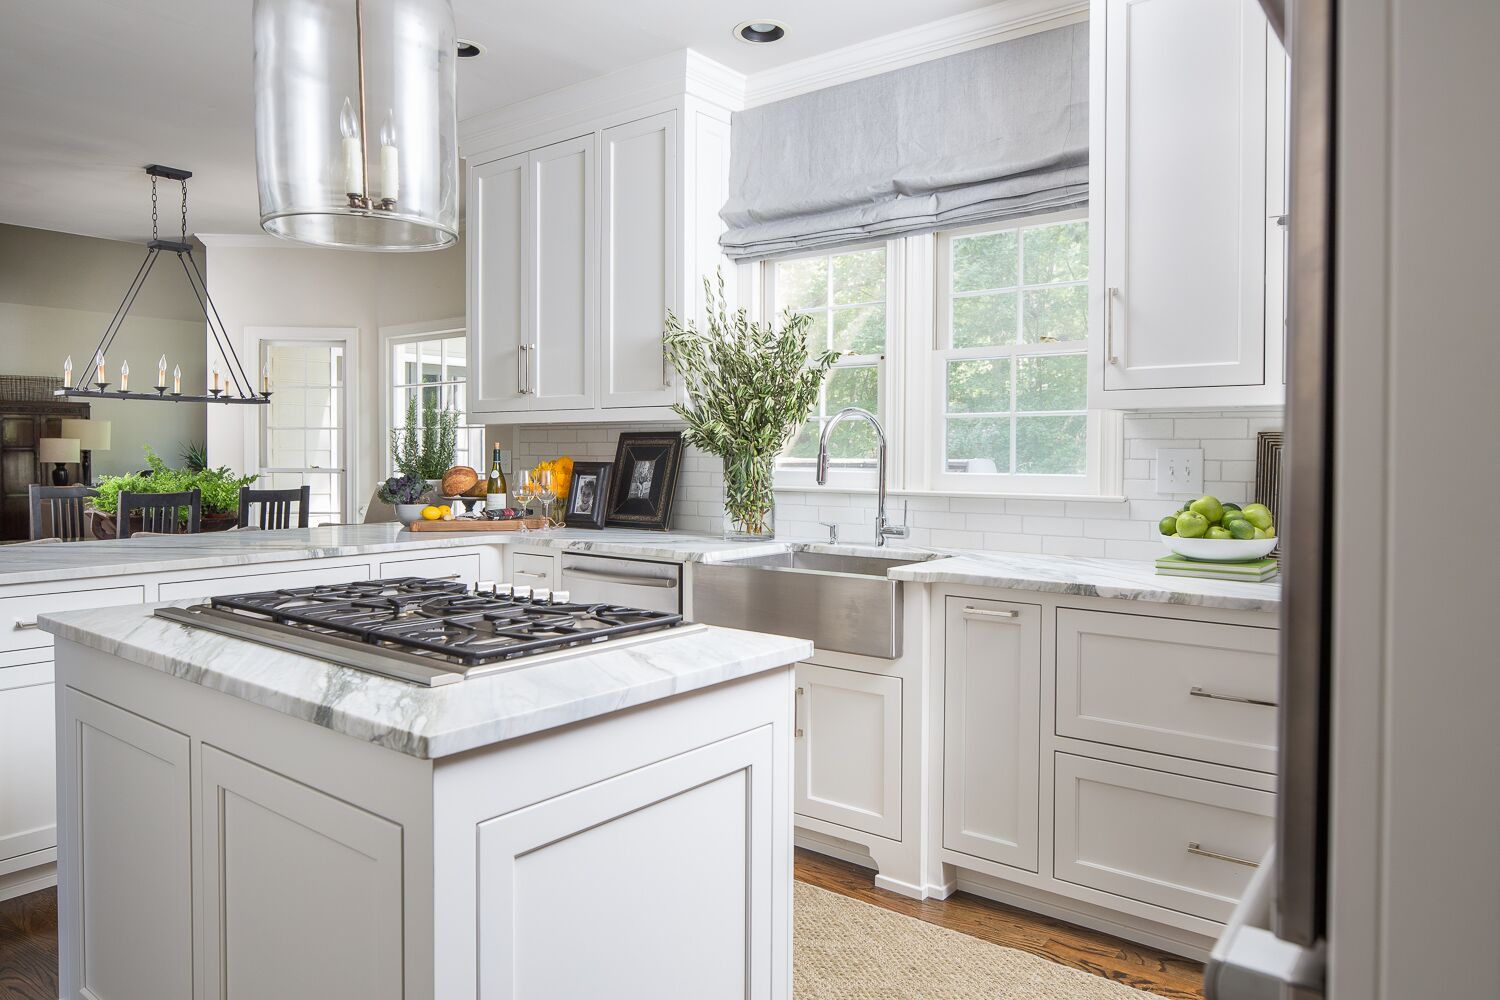 timeless kitchen buckhead tara fust design marble counters apron sink roman shade